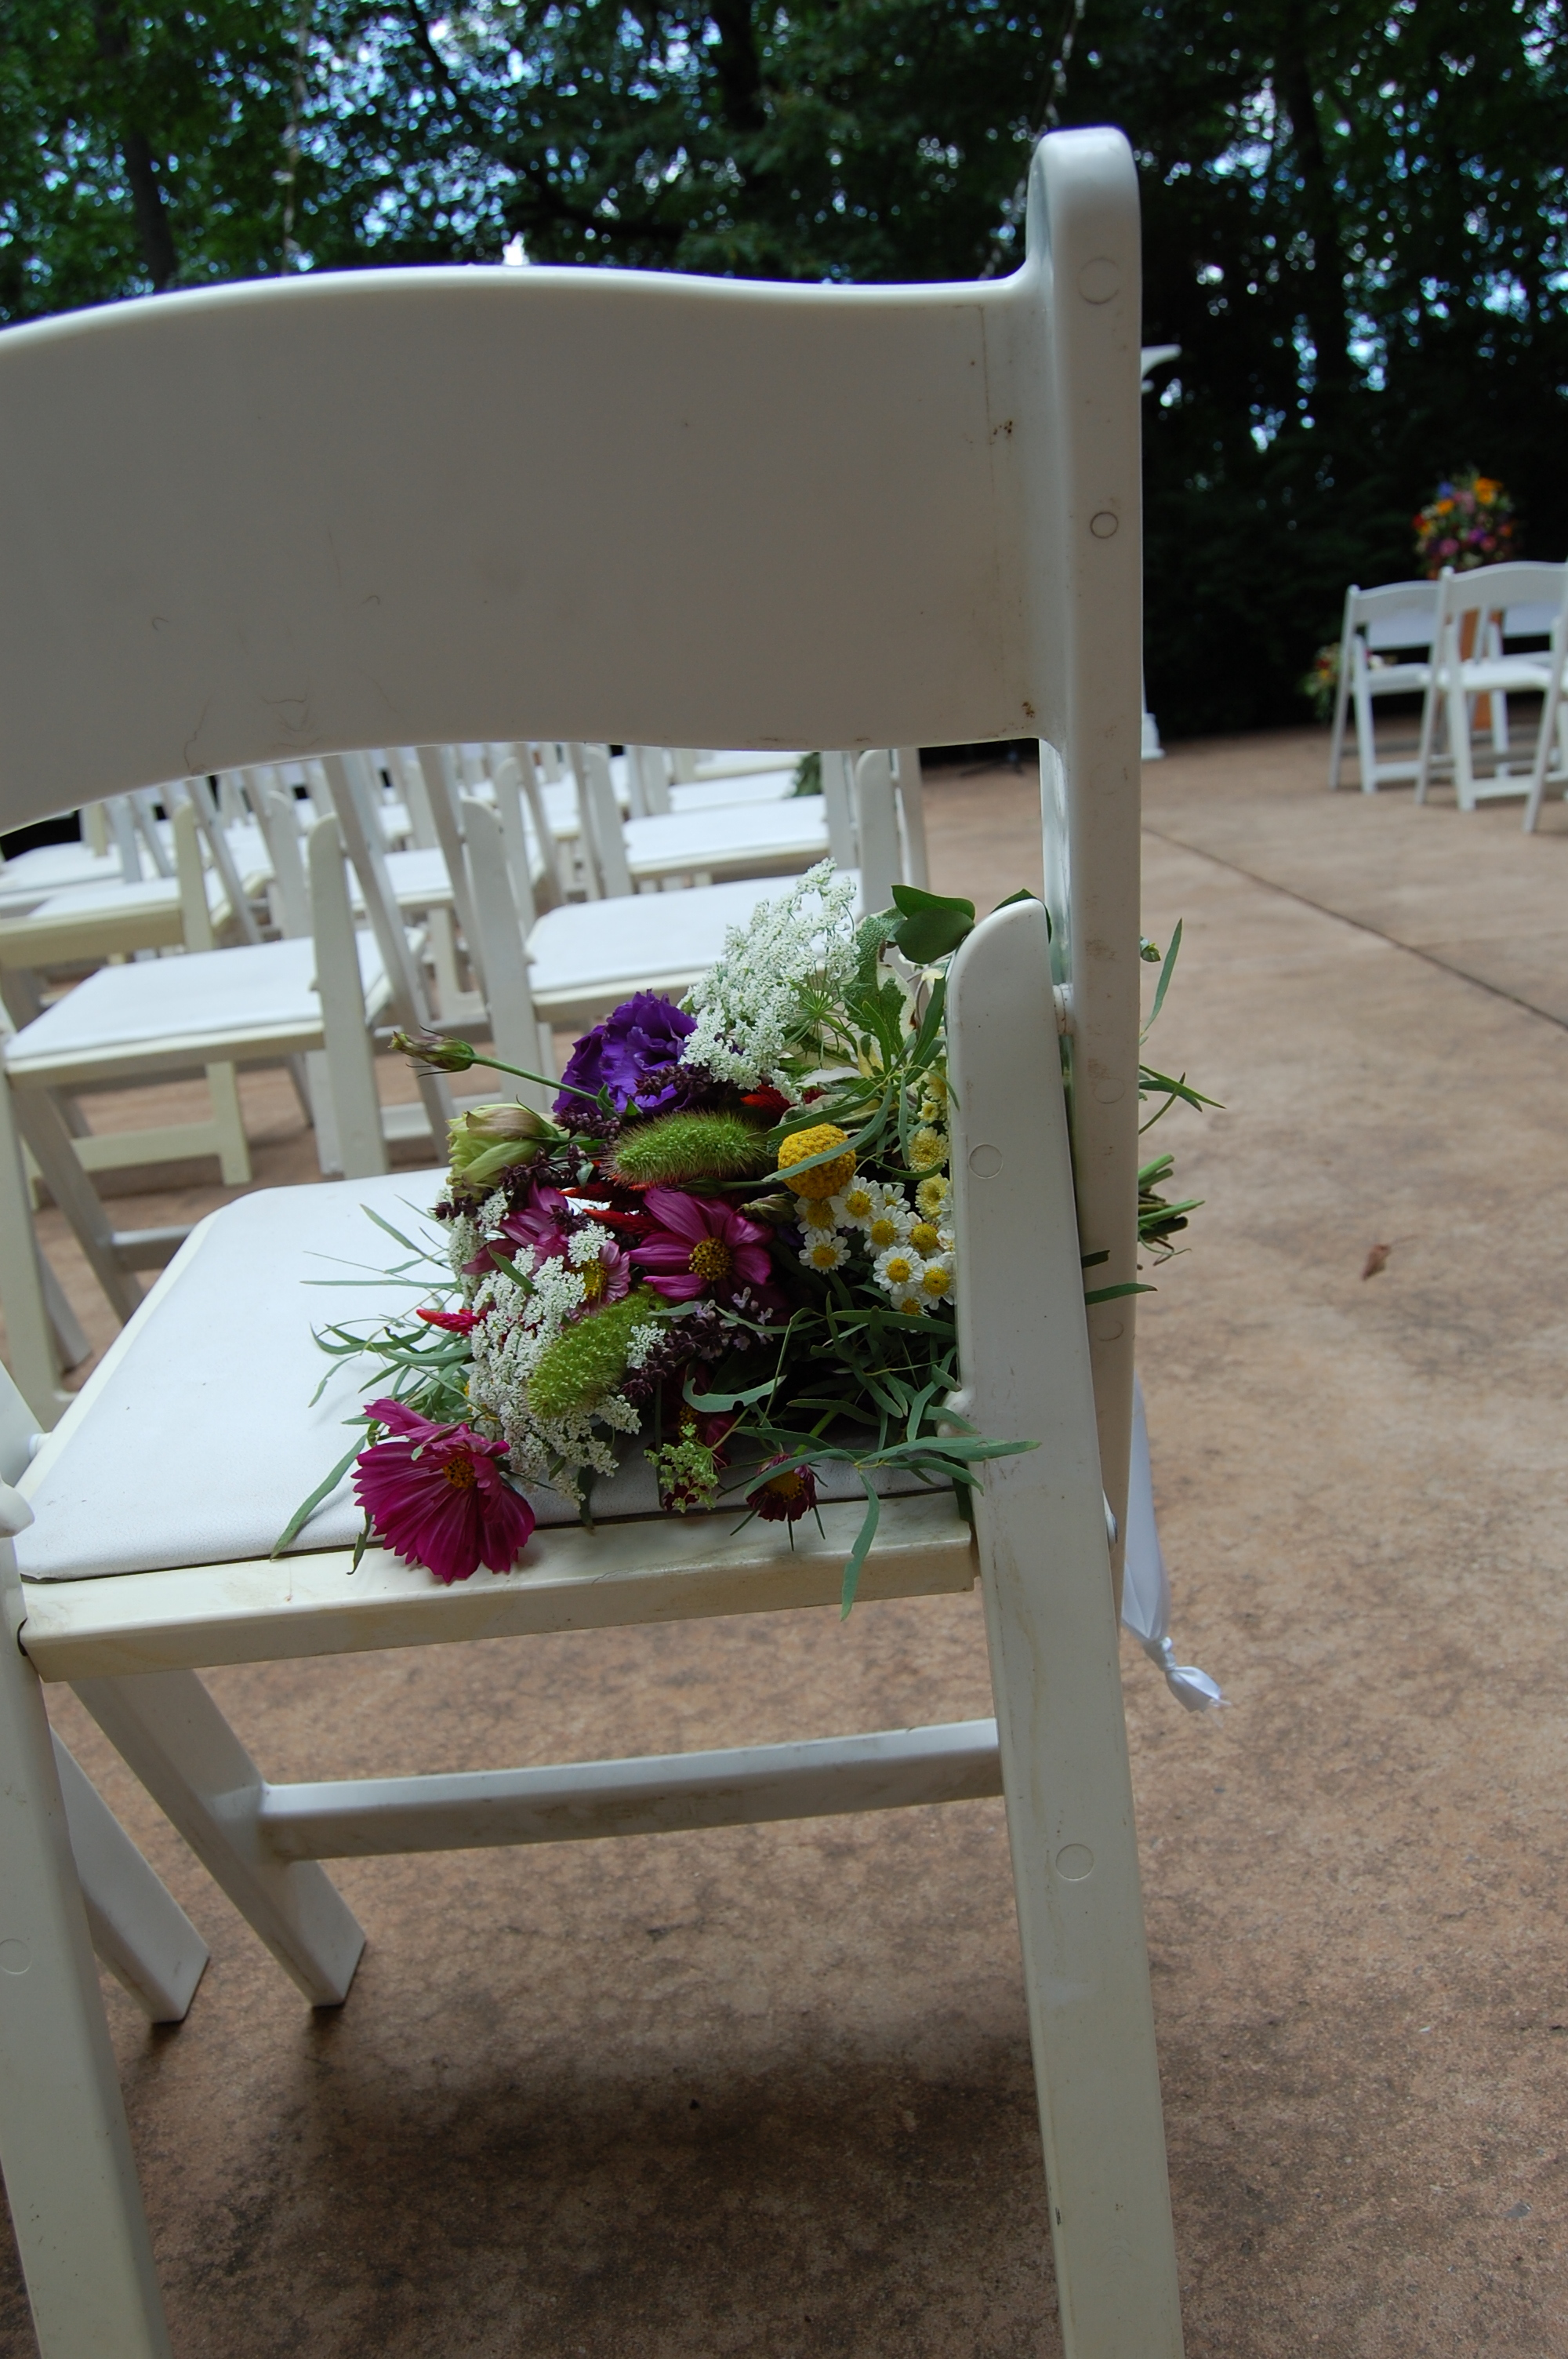 Wildflower bunches hung from the chairs bordering the aisle